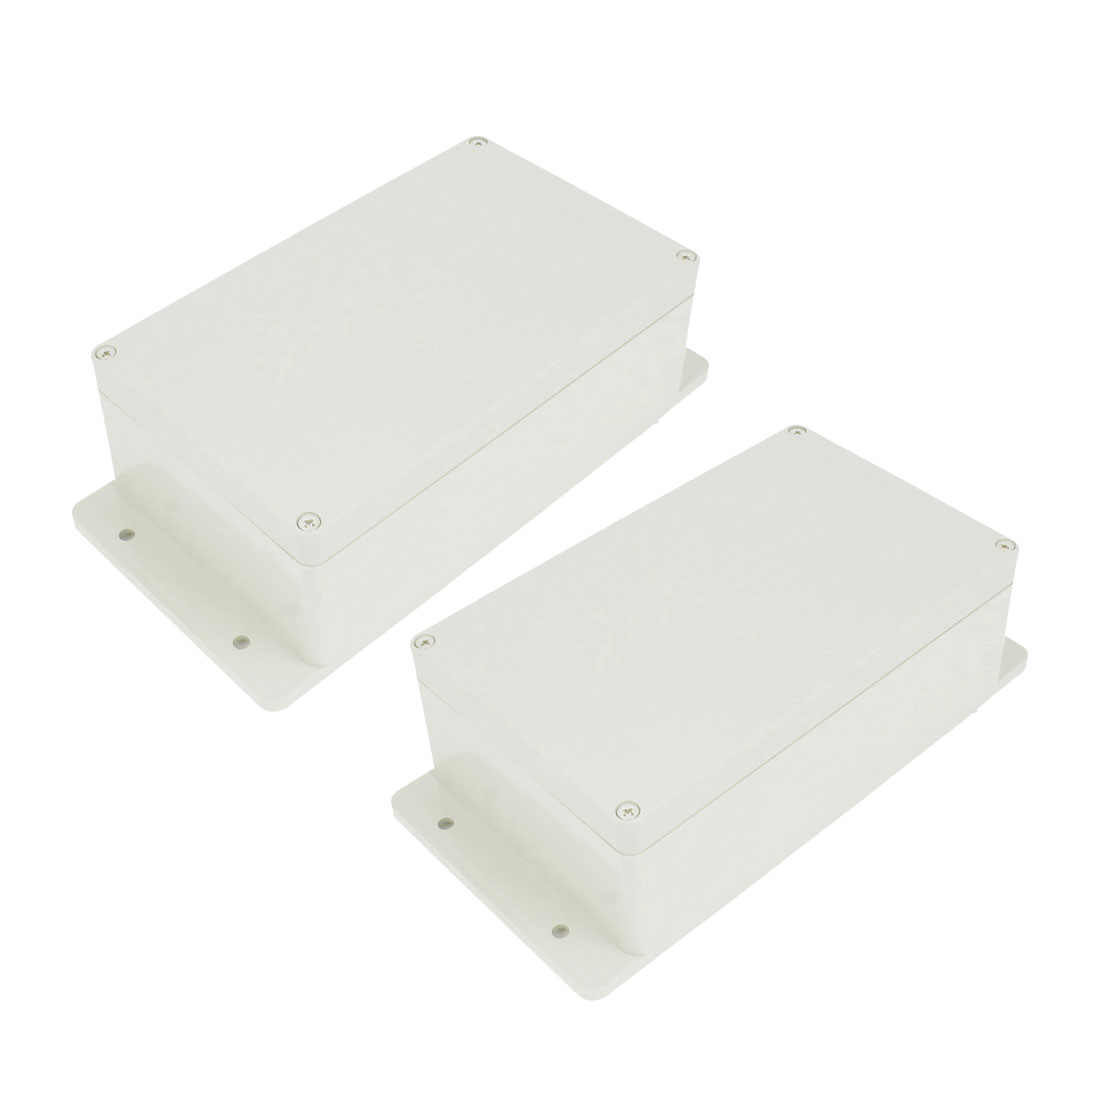 2 Pcs Sealed Plastic Enclosure Electronic Switch Junction Box Case 199 x 119 x 74mm